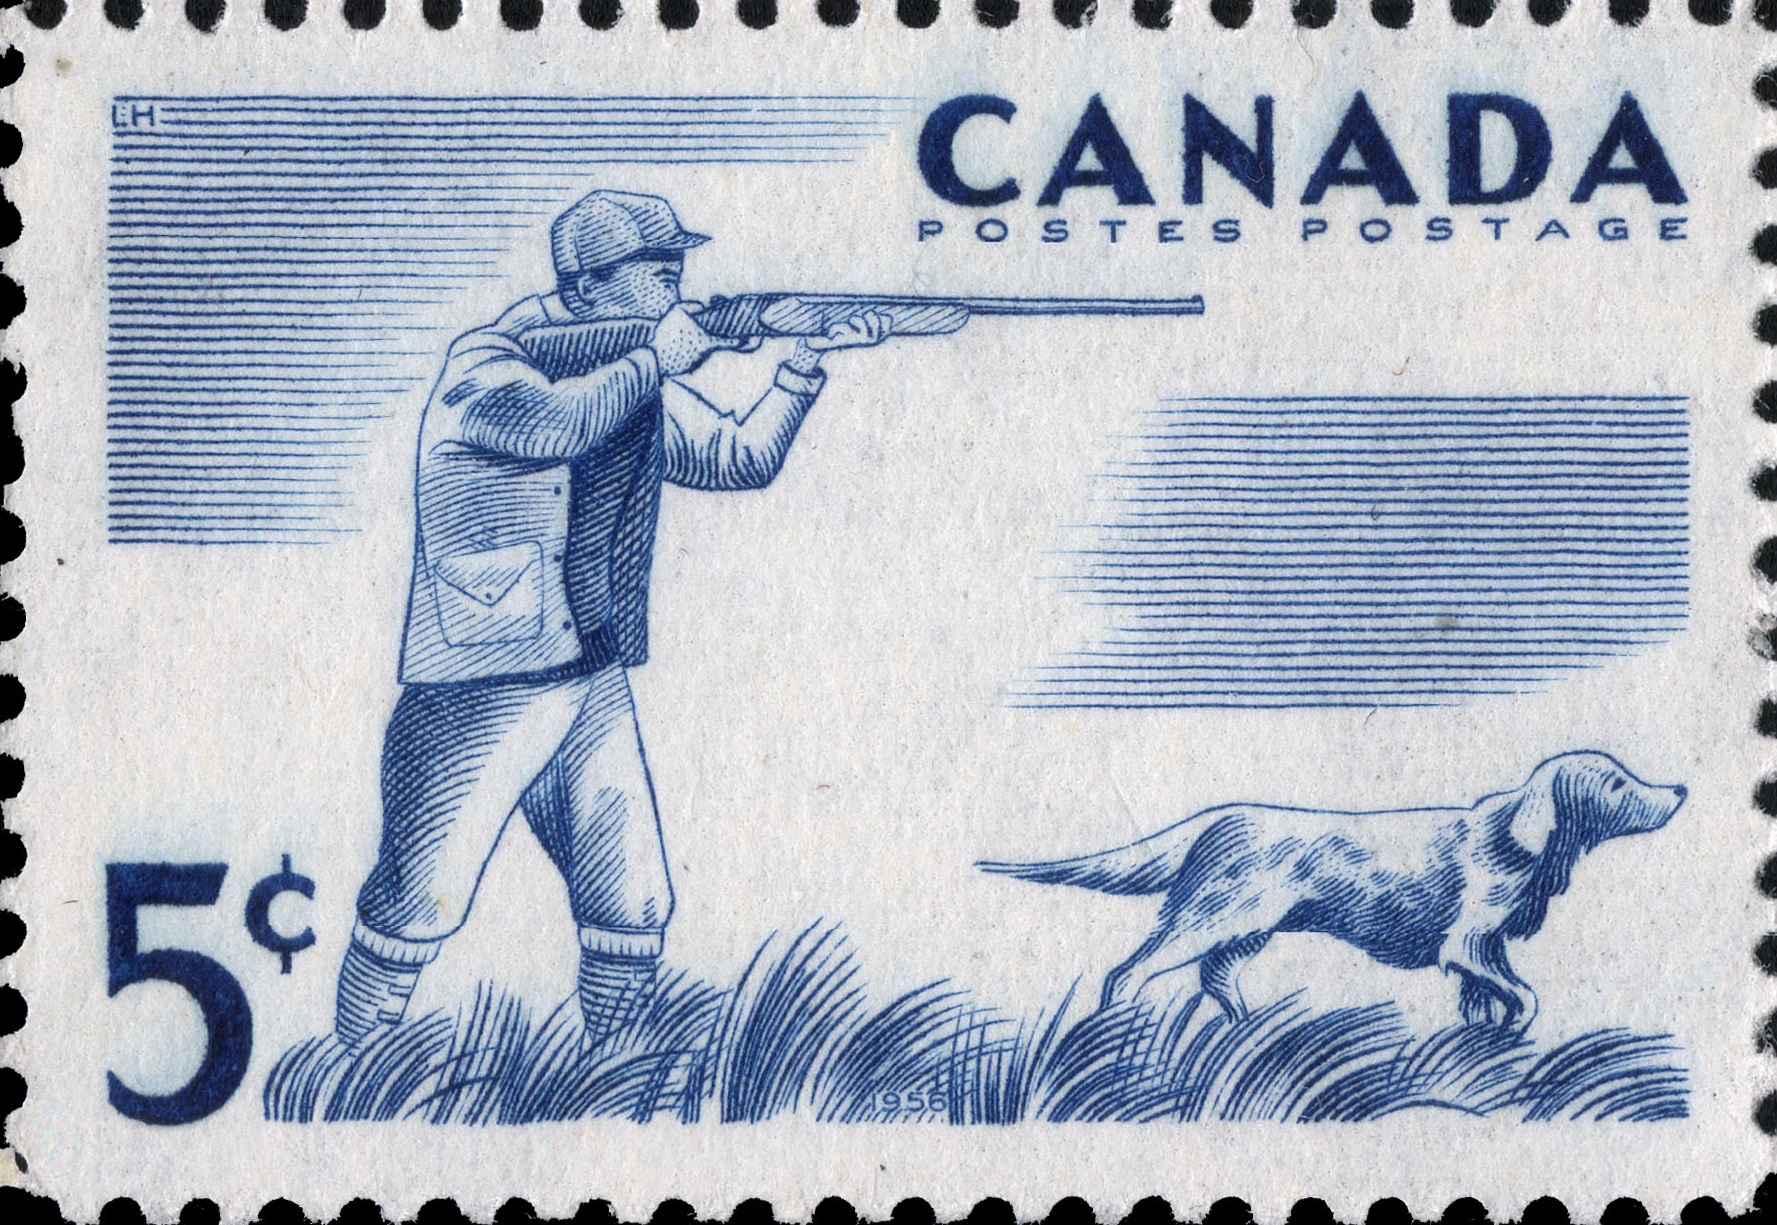 Hunting Canada Postage Stamp